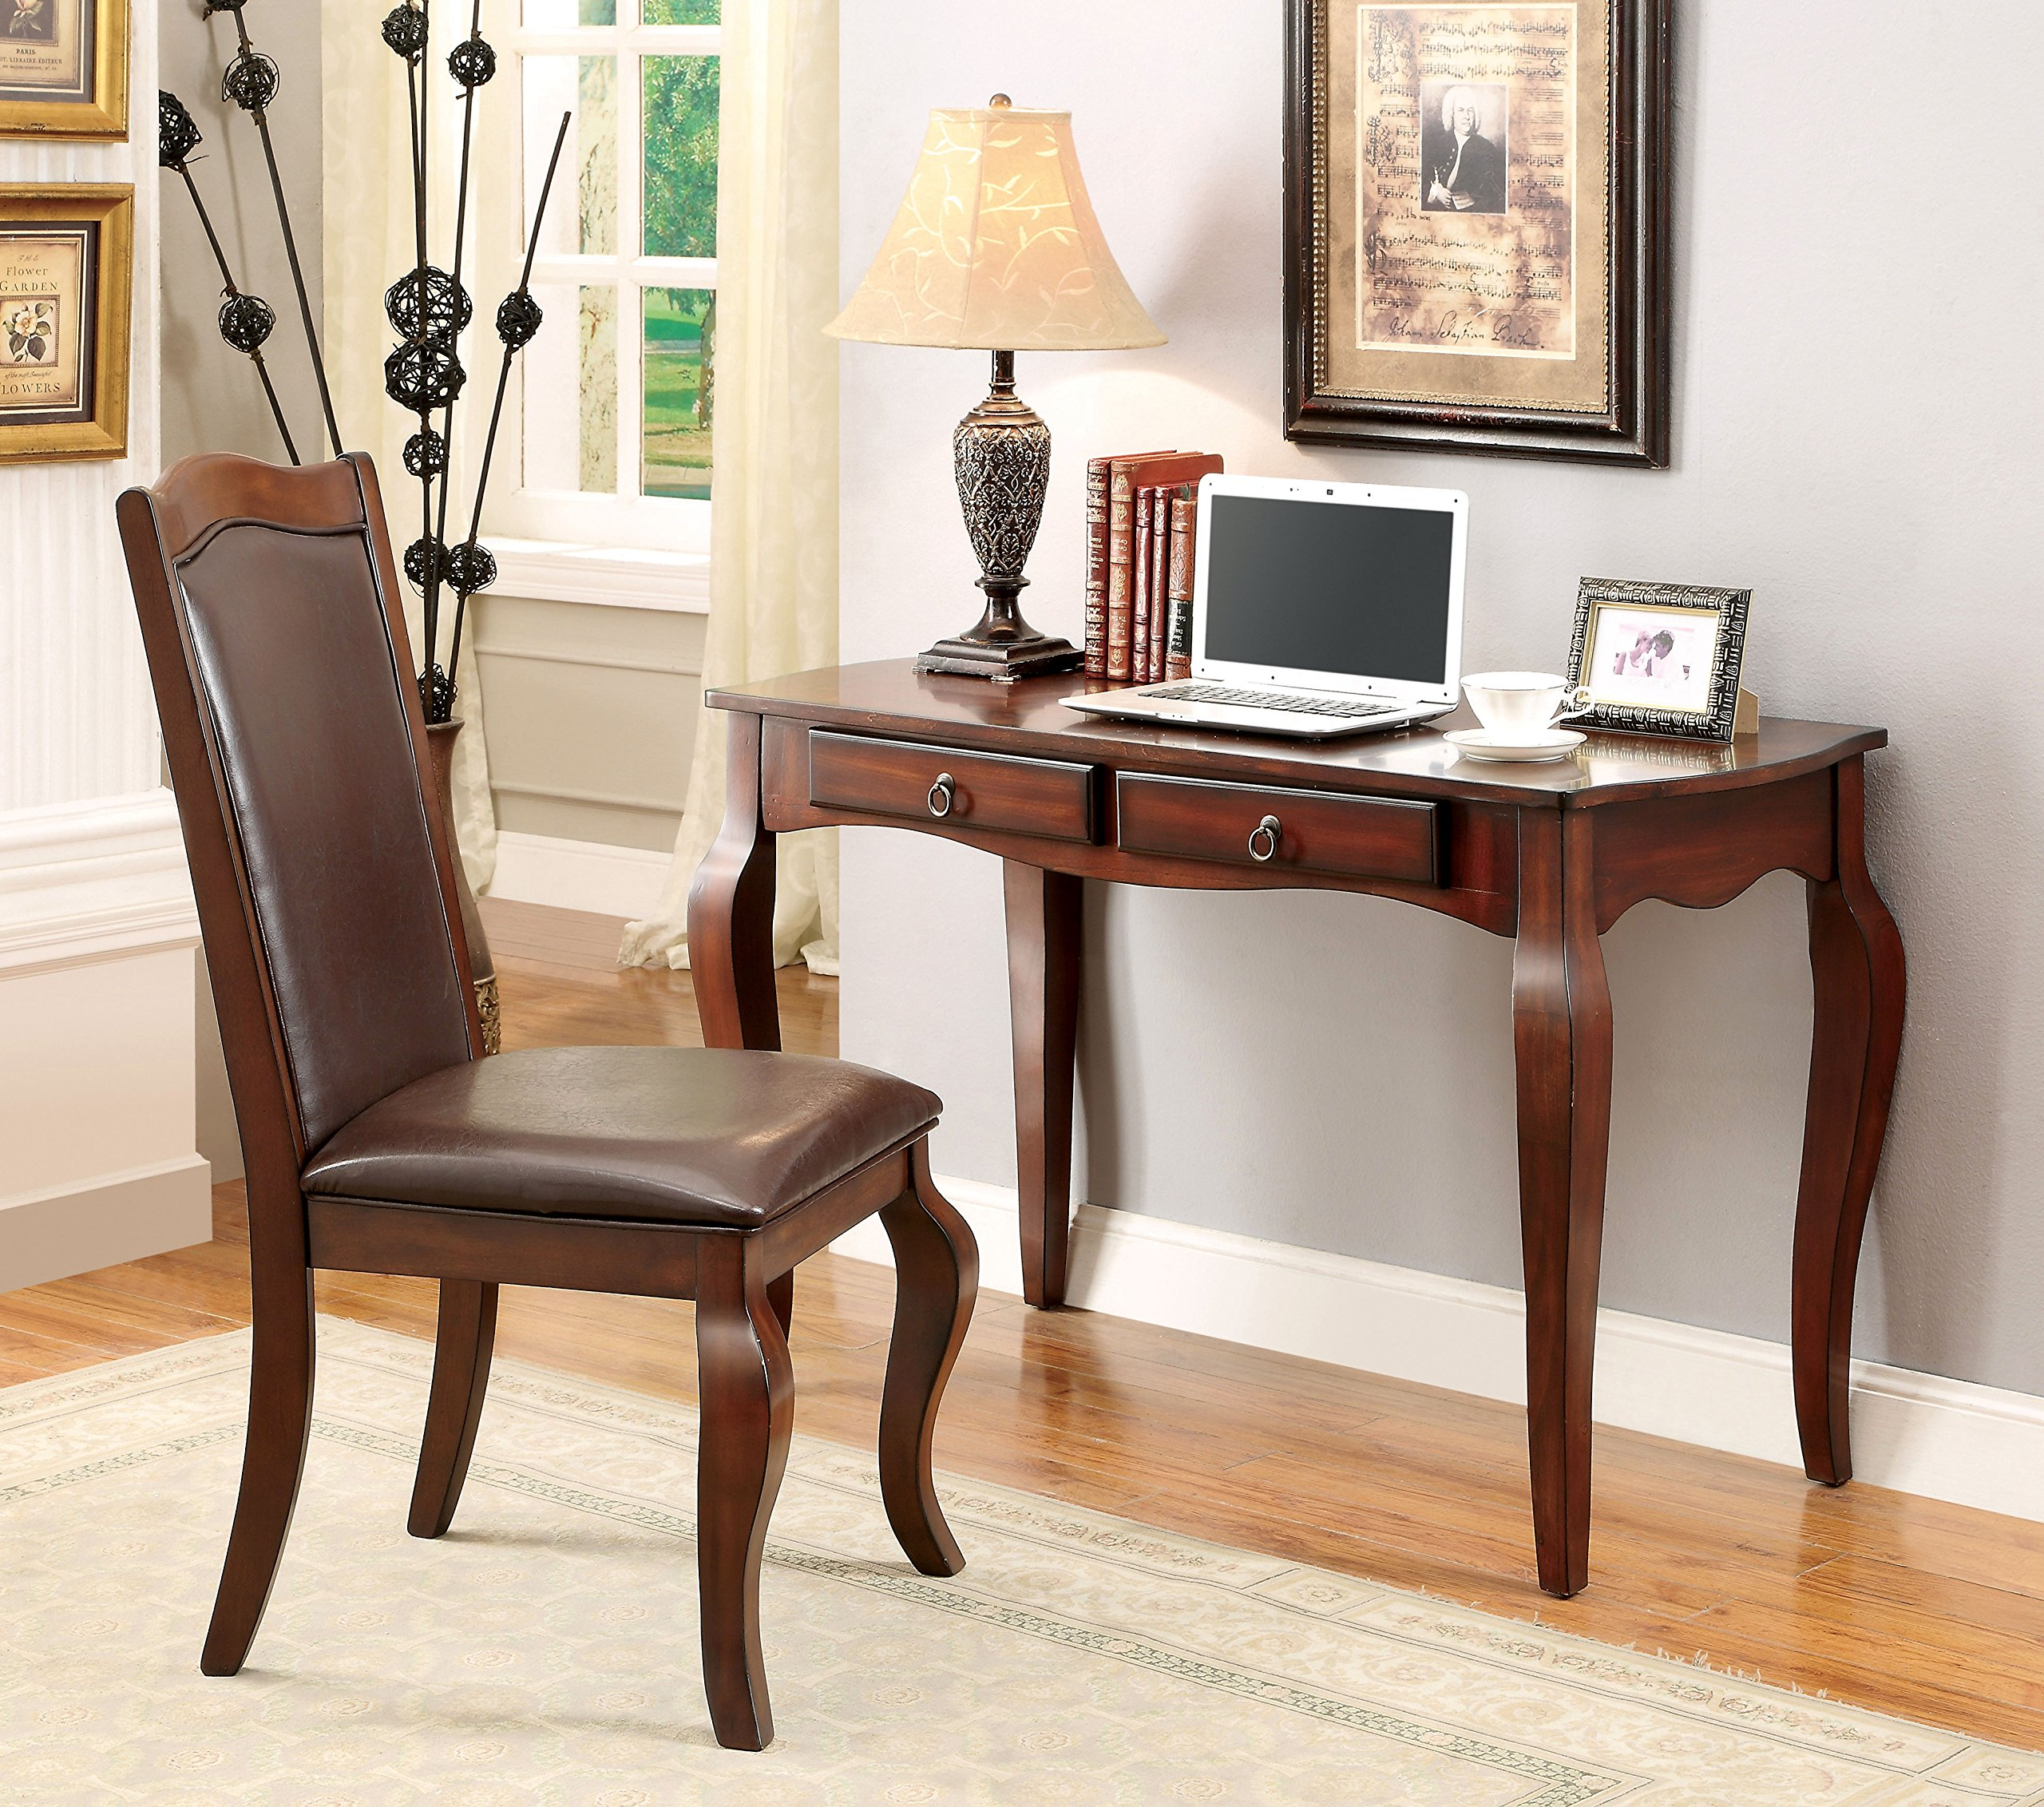 Furniture of America Marius Computer Desk and Chair